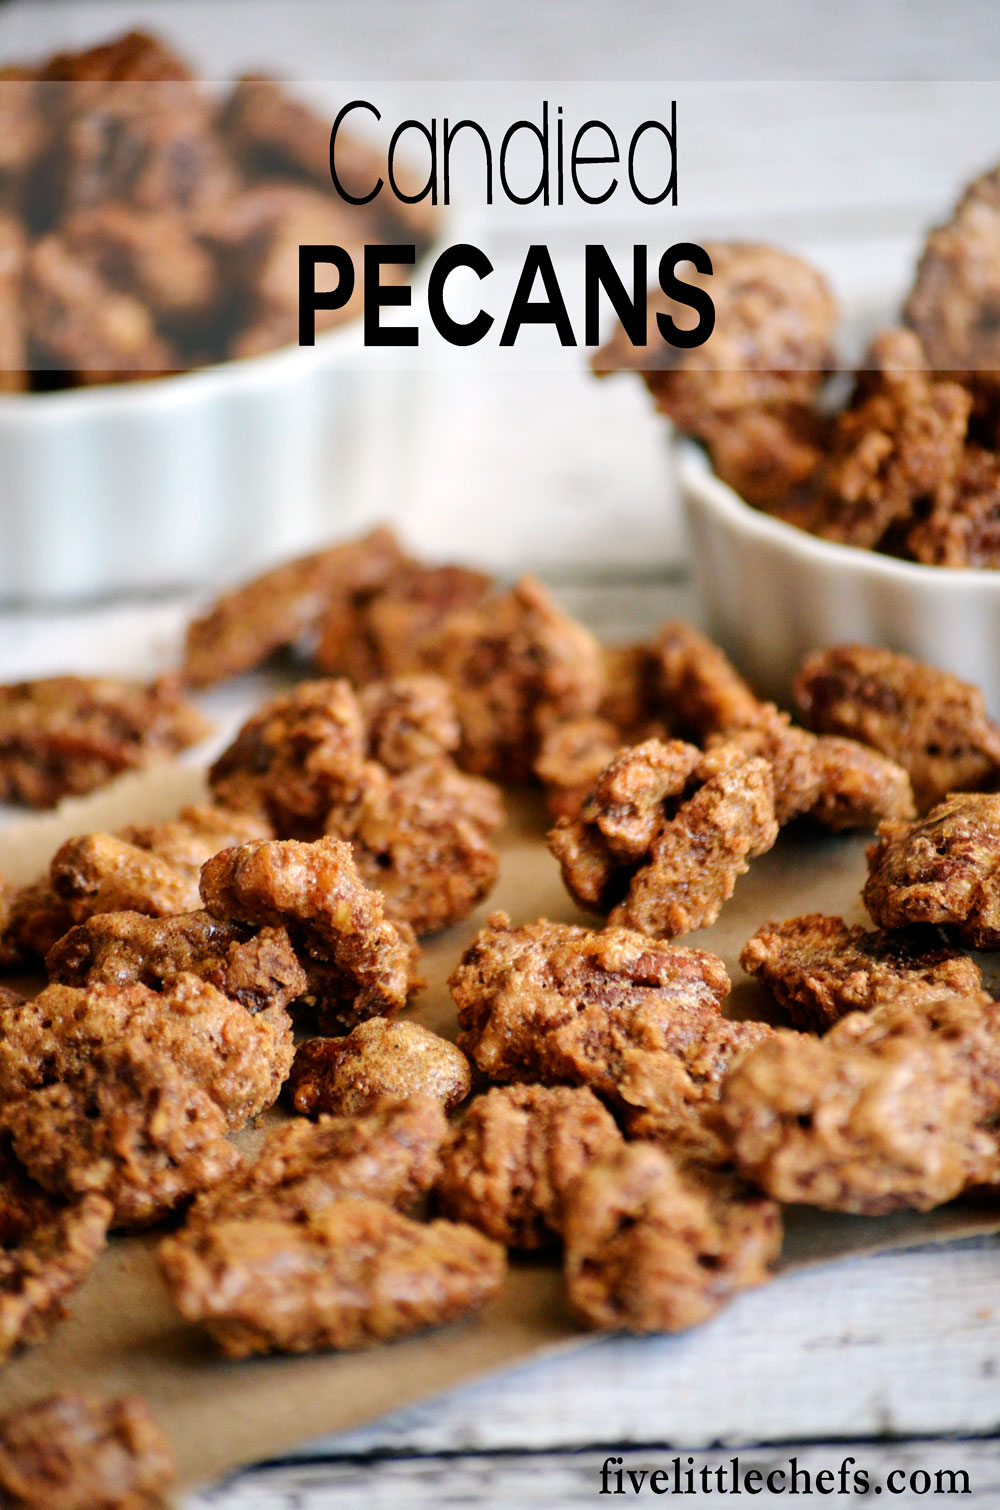 Candied Pecans is an easy recipe with brown sugar and cinnamon. Tastes great on salads or on sweet potatoes.